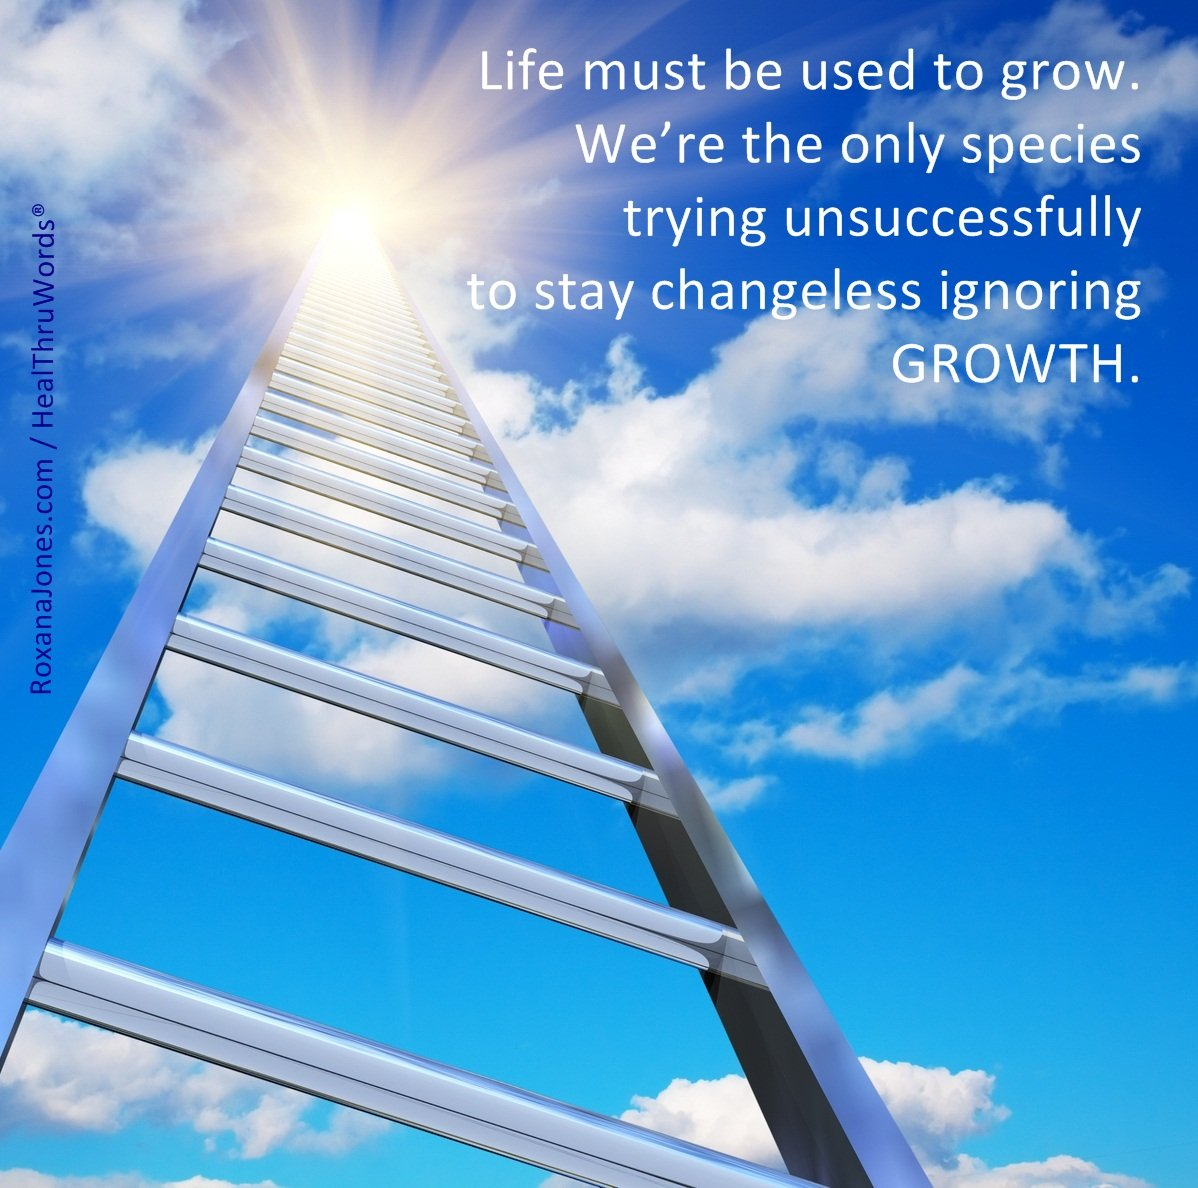 Inspirational Image: A Life of Growth